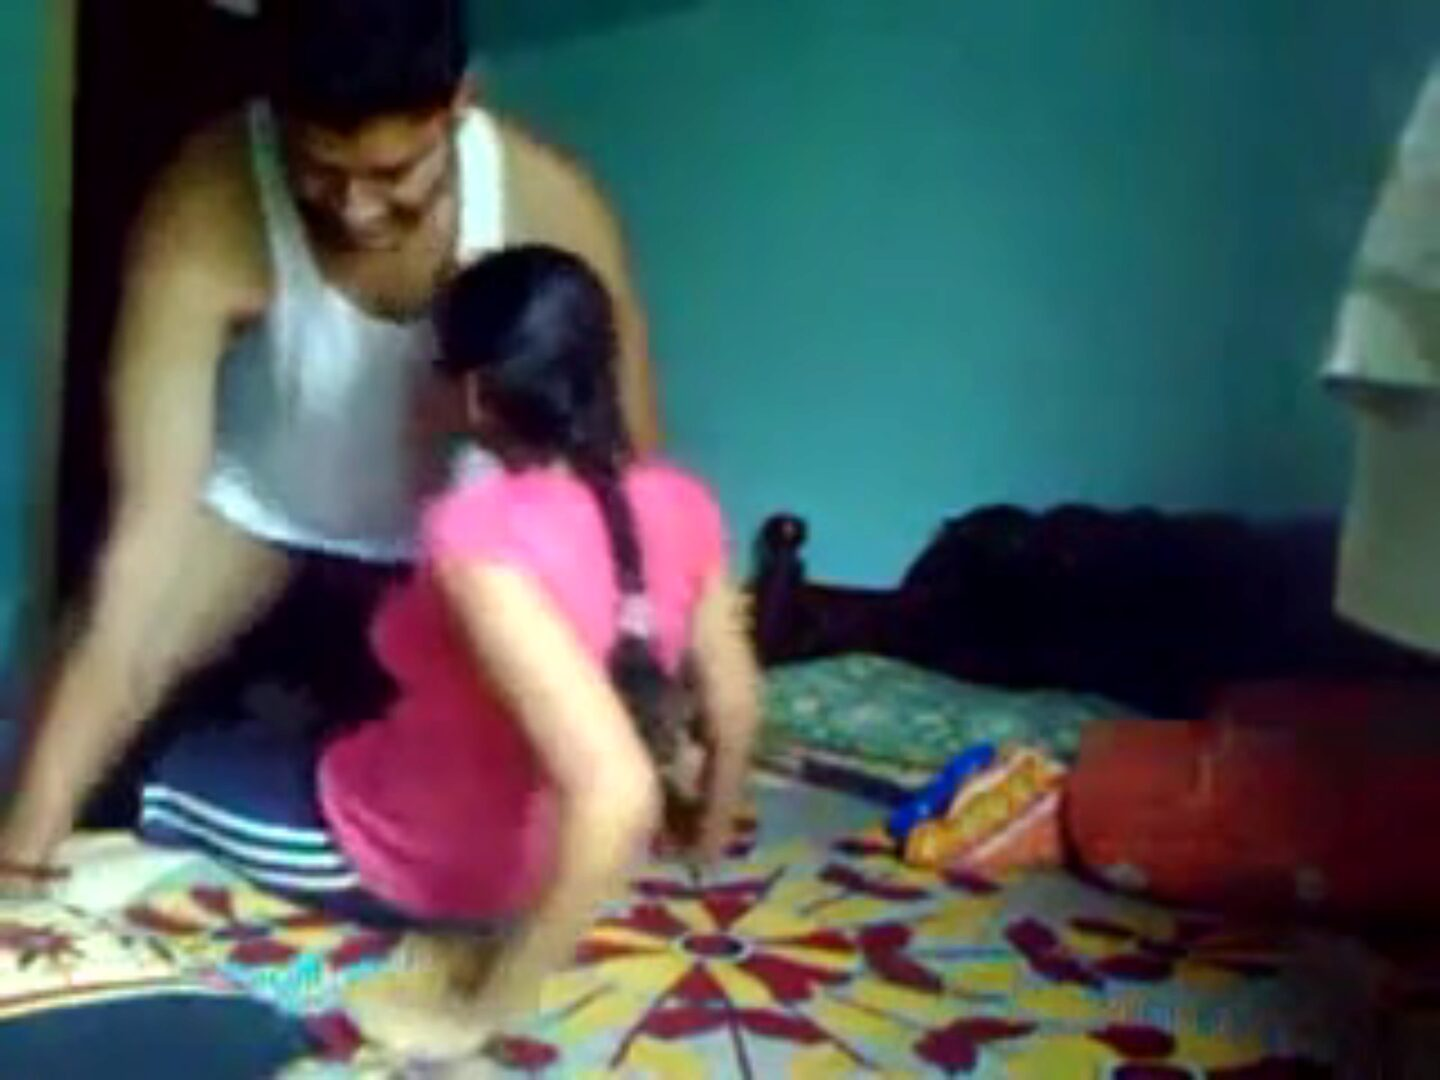 Desi trickled video of indian gf and boyfriend  indian oozed pornography Indian aunty , indian school beauty , indian maid , indian web series , indian legal age teenager , indian couple , indian xxx , indian leaked